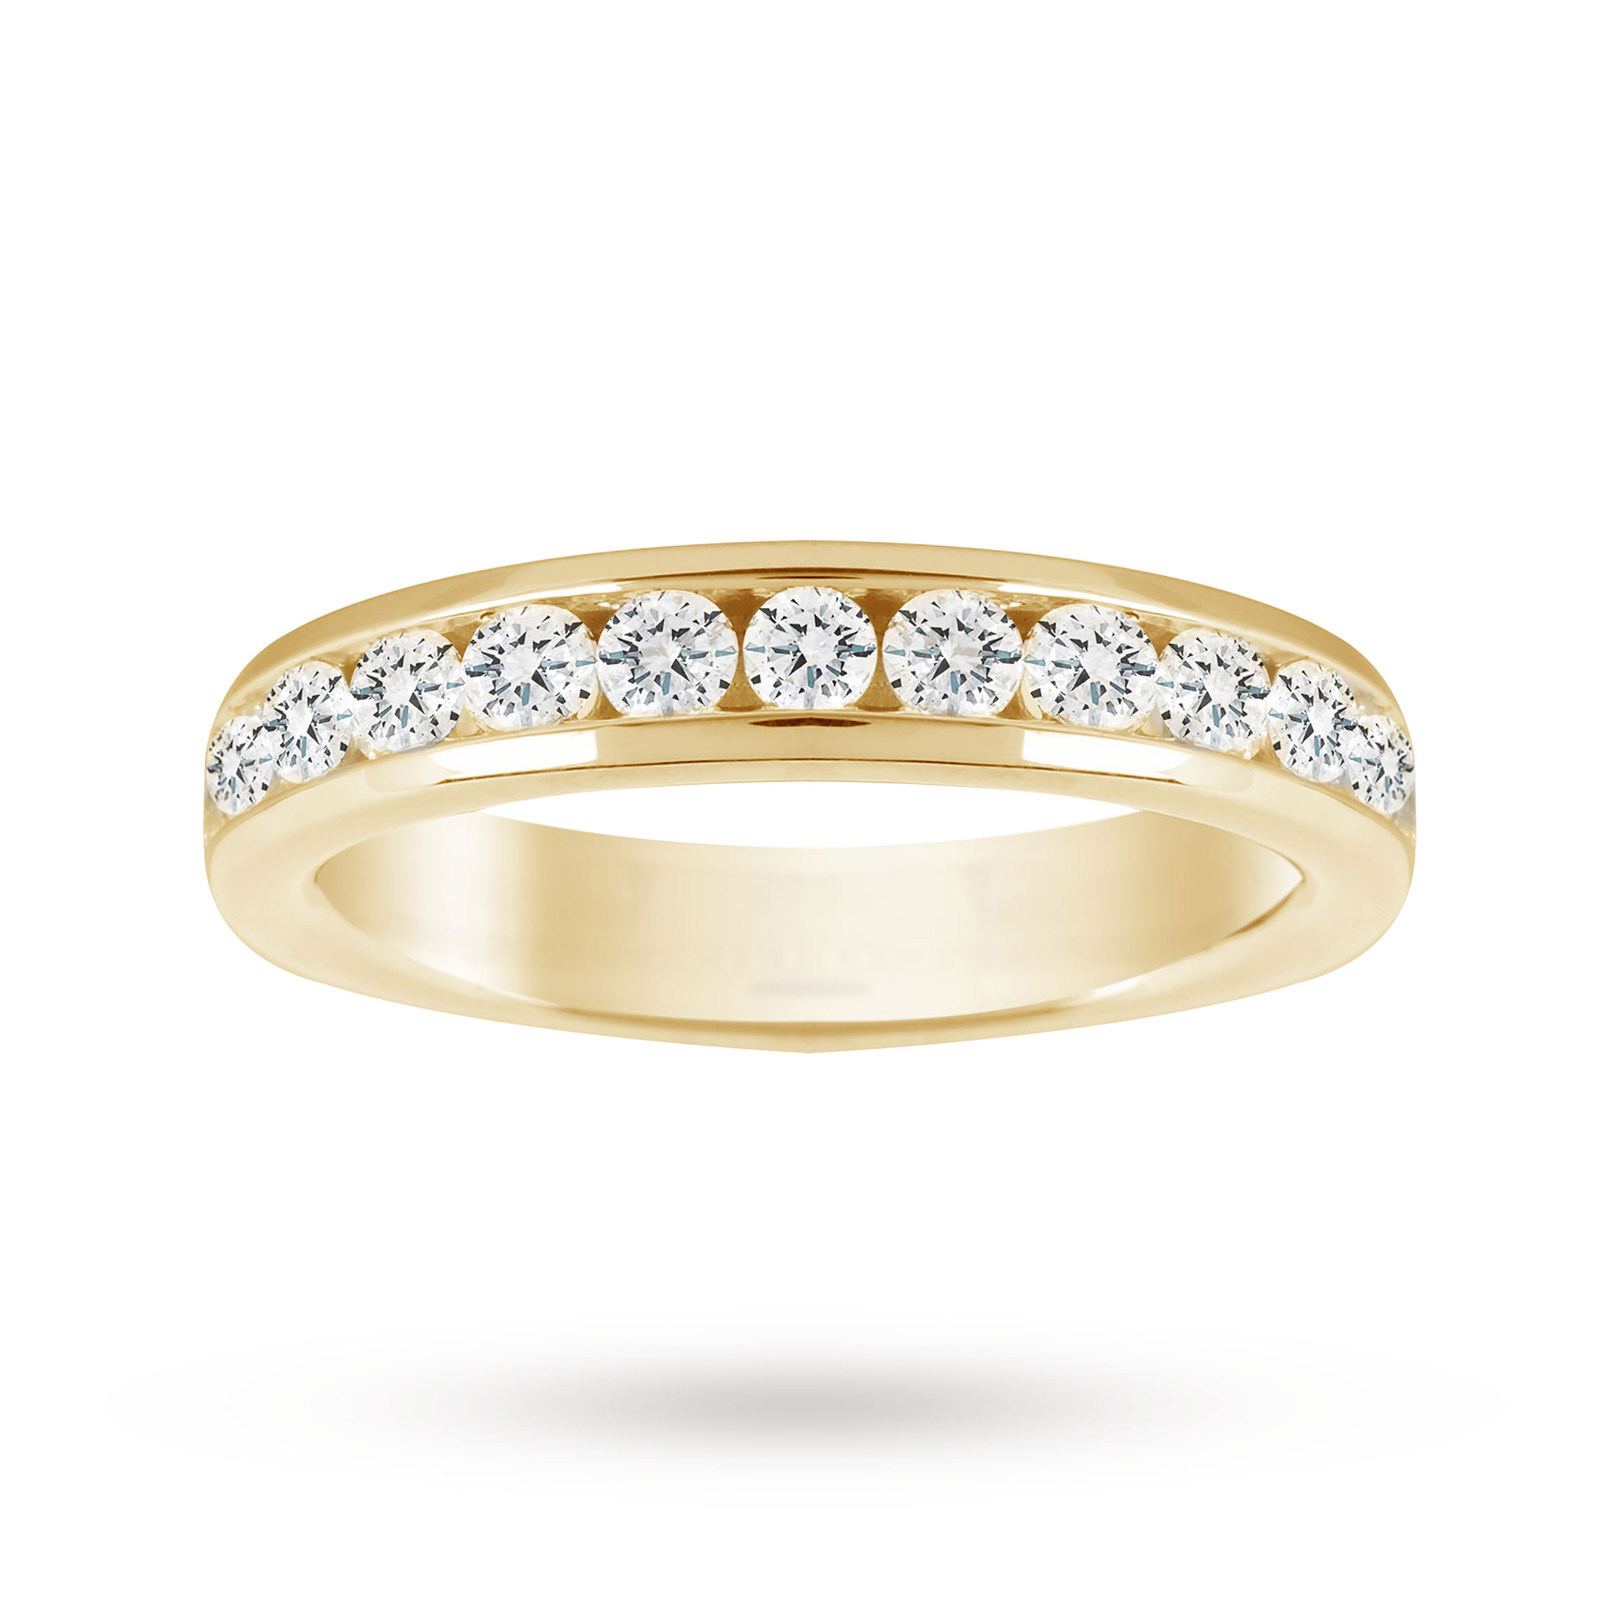 18ct Yellow Gold 1.00cttw Diamond Half Eternity Ring